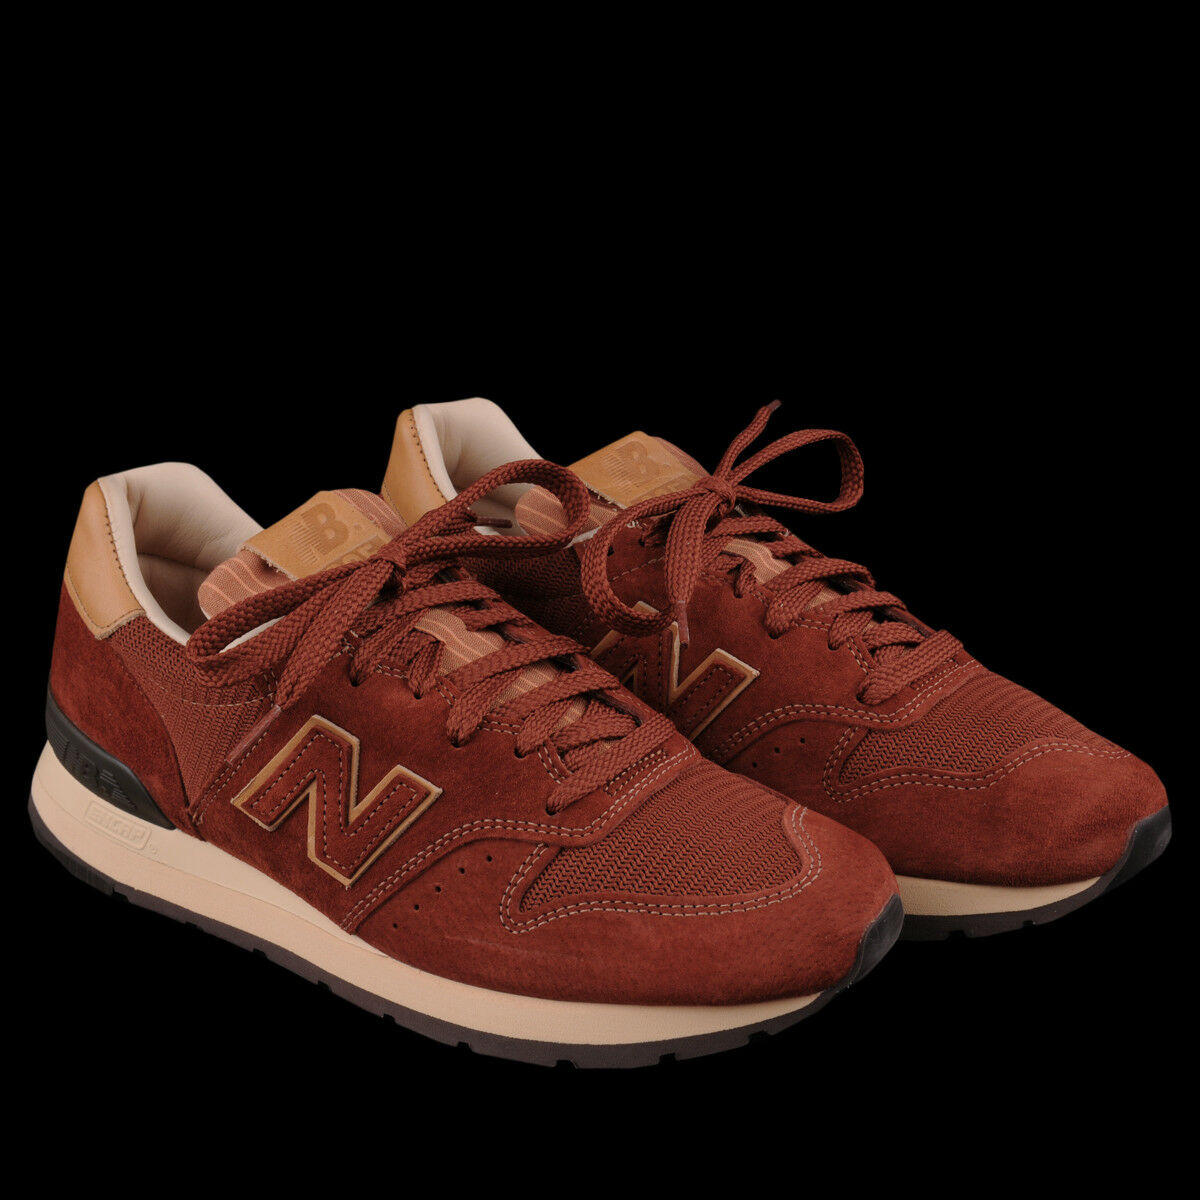 NEW New Balance 995 Todd SuedeChaussuresM995DBG Todd 995 Snyder Baseball Pack MANY SIZES fece87